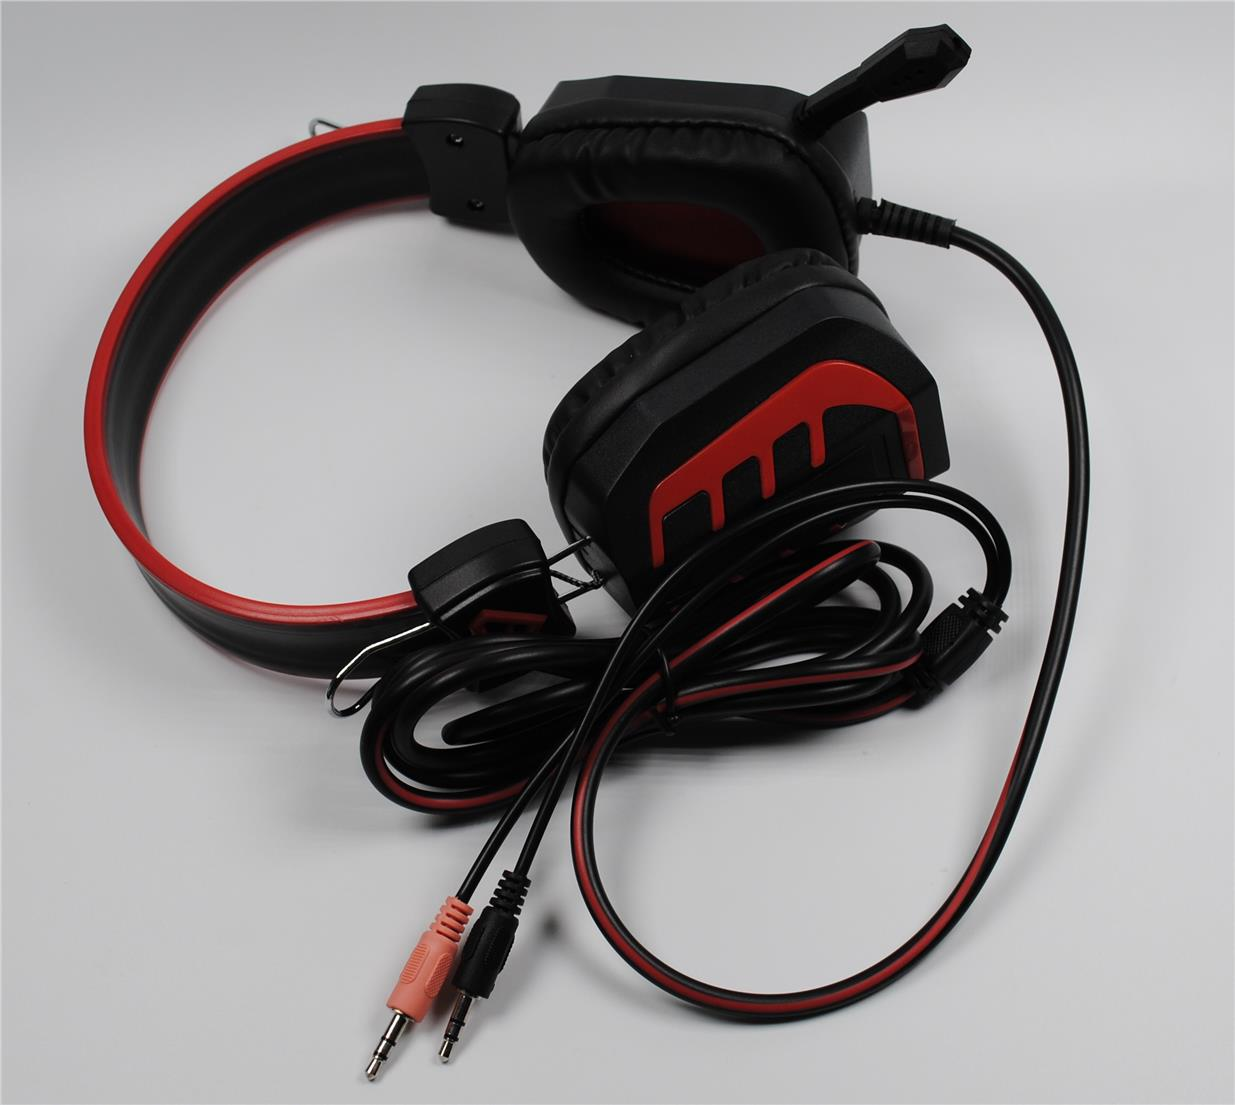 KL Good Quality Gaming Heavy Duty Headset for Cybercafe / Education